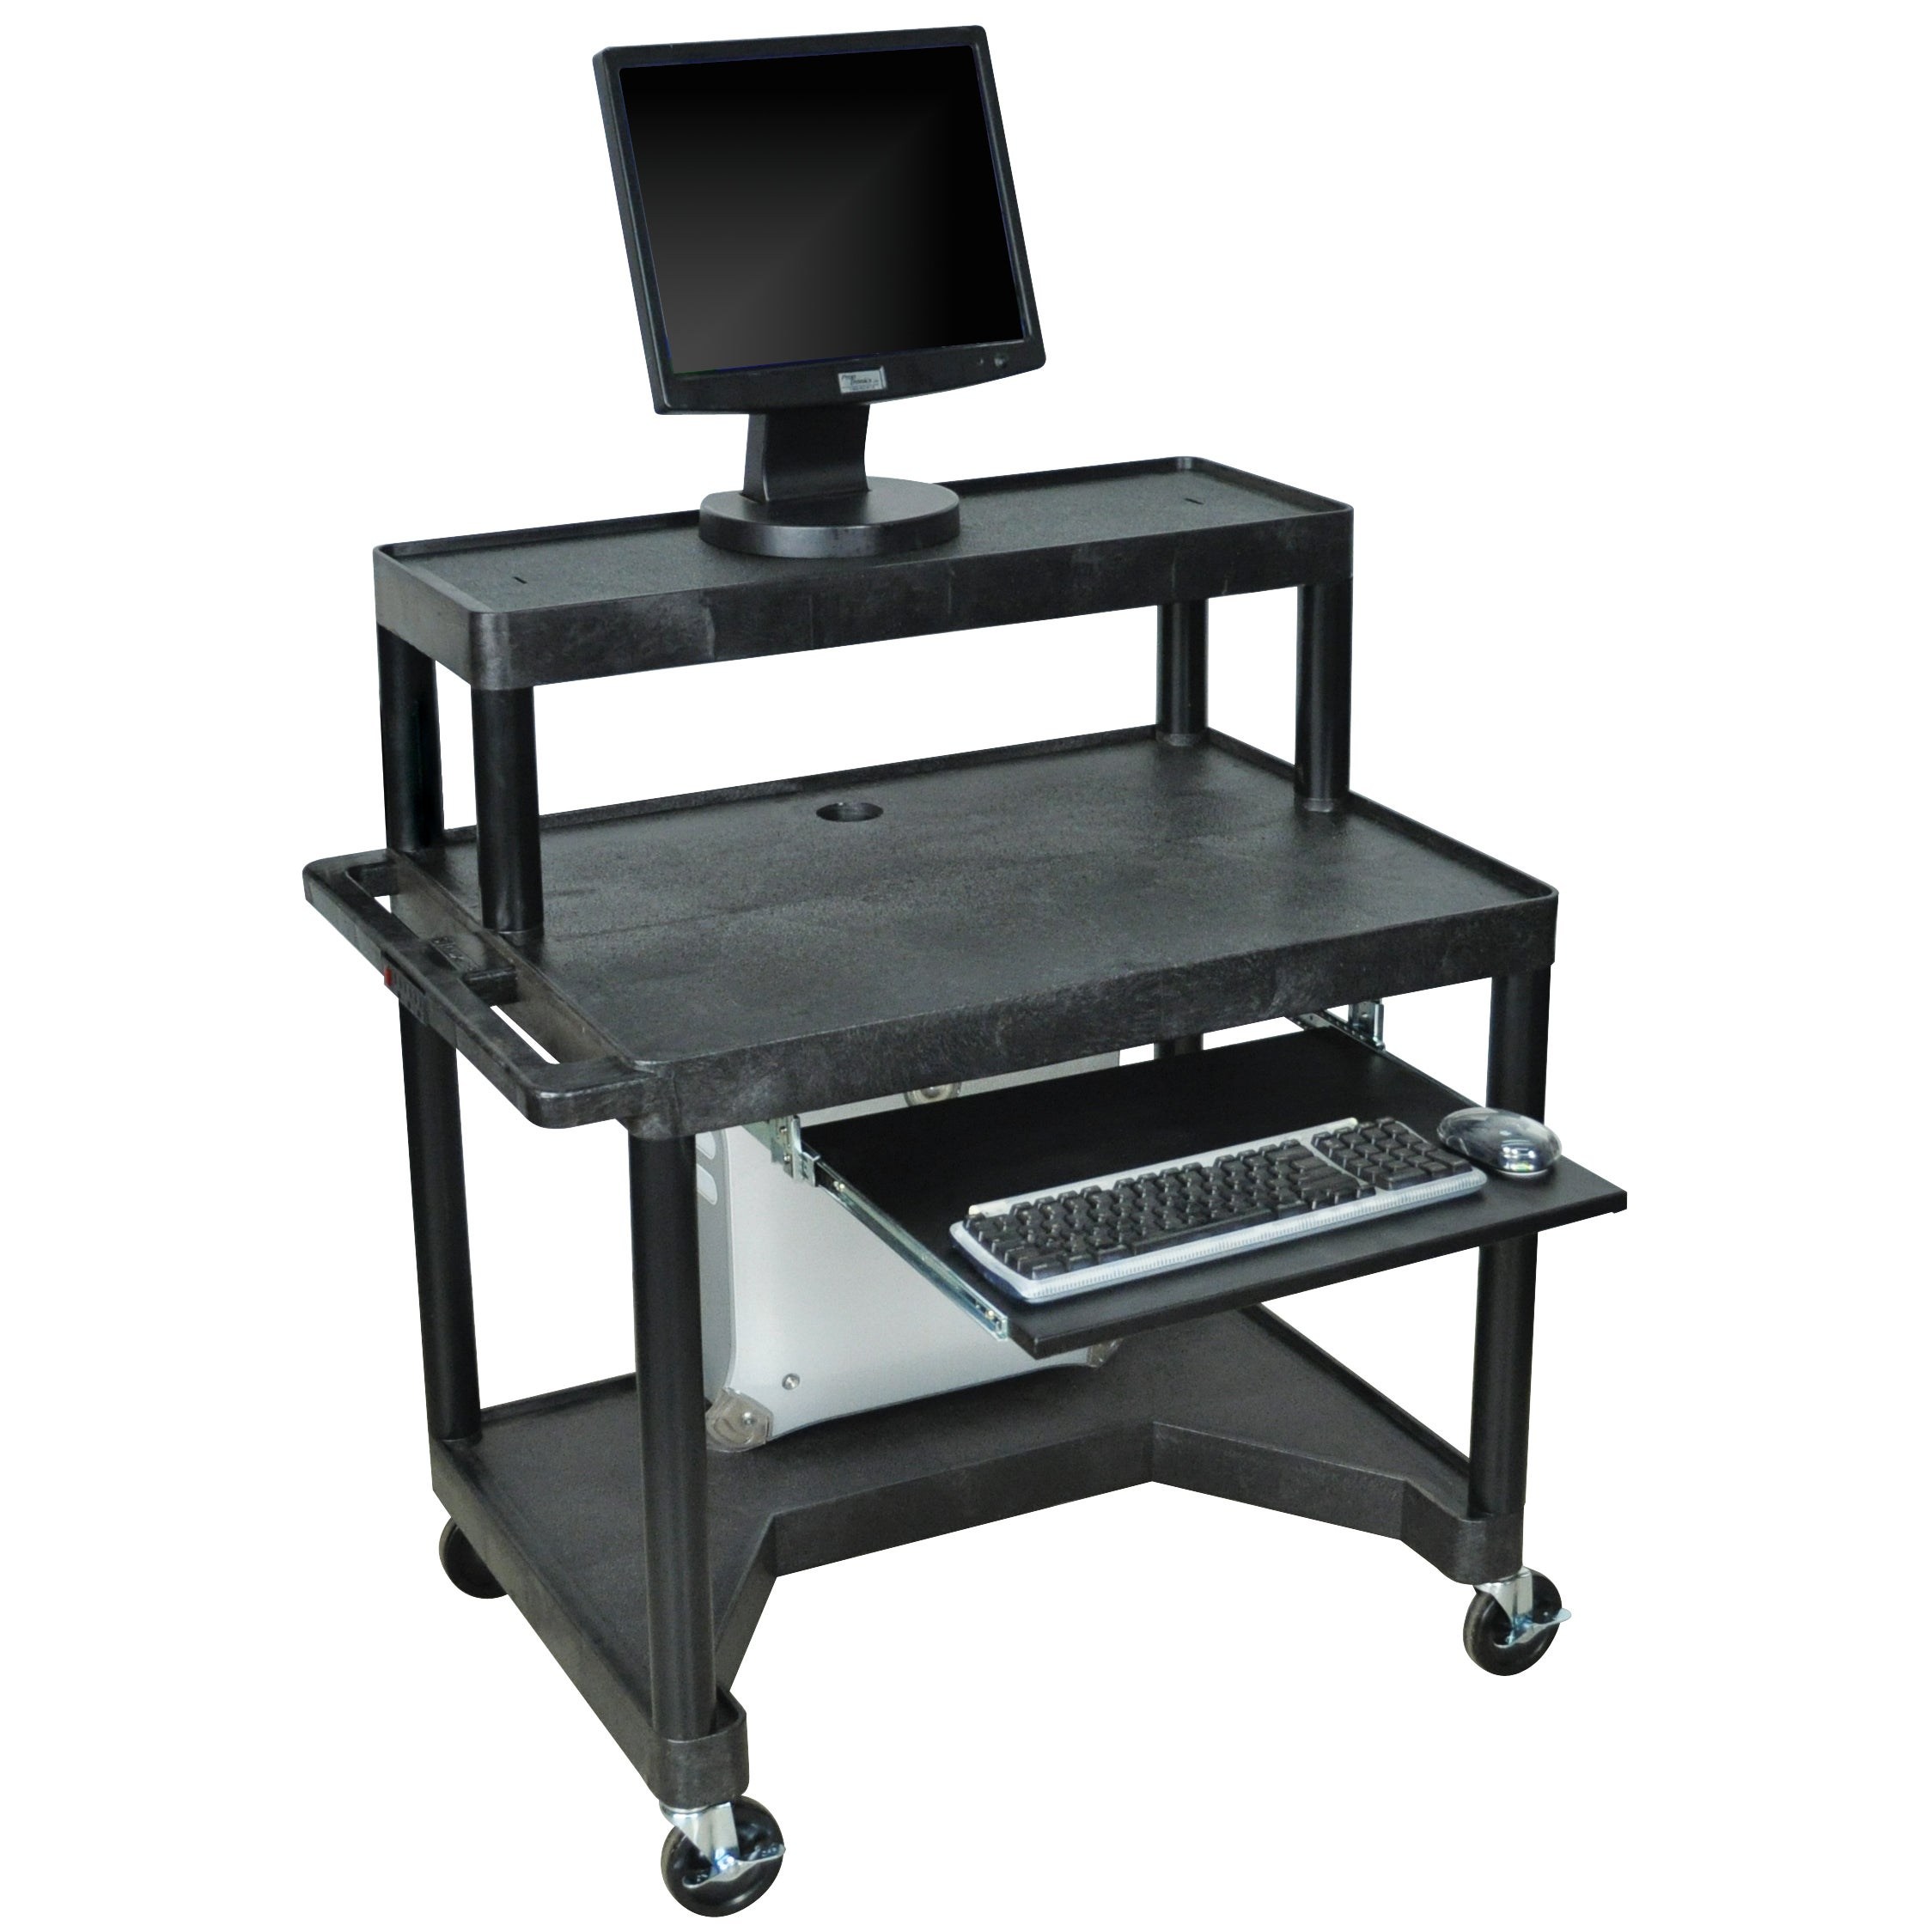 Luxor Black LEM32TK-B 3-shelf Computer Work Station at Sears.com